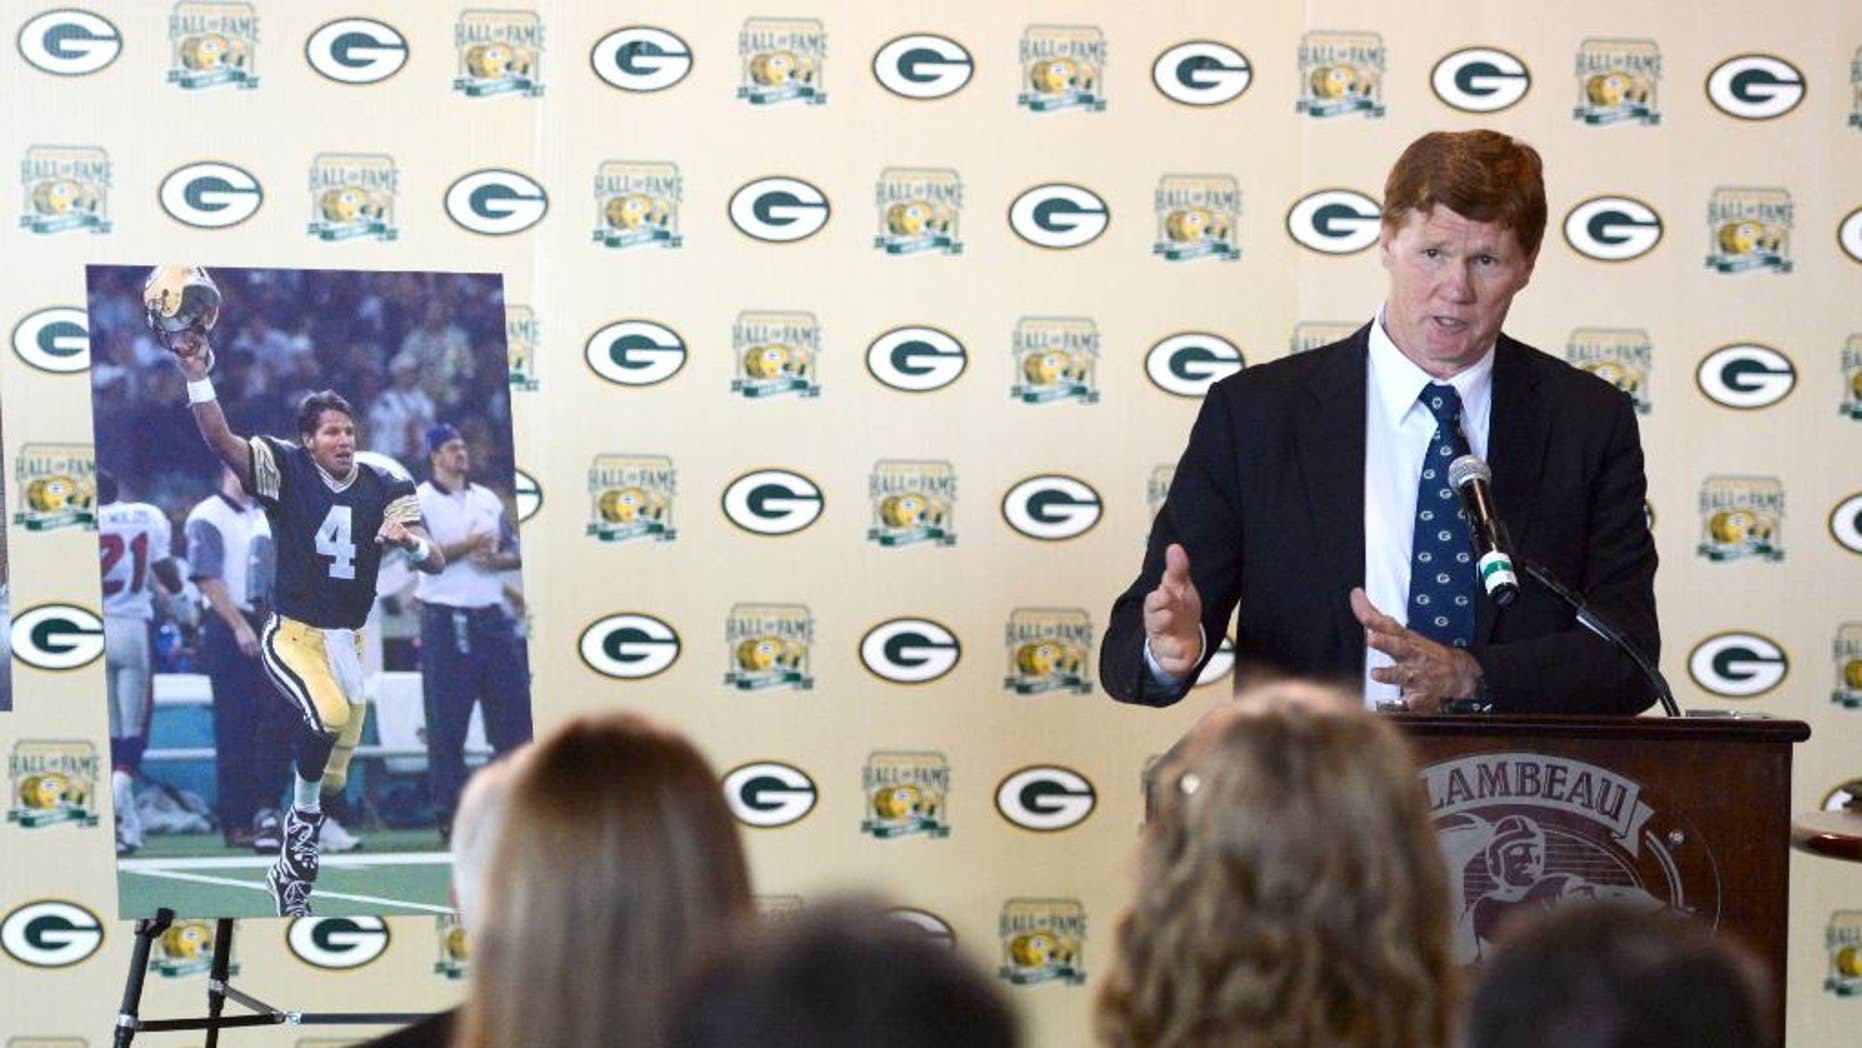 Green Bay Packers president/CEO Mark Murphy announces during a news conference at Lambeau Field, Monday, August 4, 2014, that former Packers quarterback Brett Favre's name and No. 4 will be unveiled inside Lambeau Field during a game in the fall of 2015.  (AP Photo/The Green Bay Press-Gazette, H. Marc Larason) NO SALES